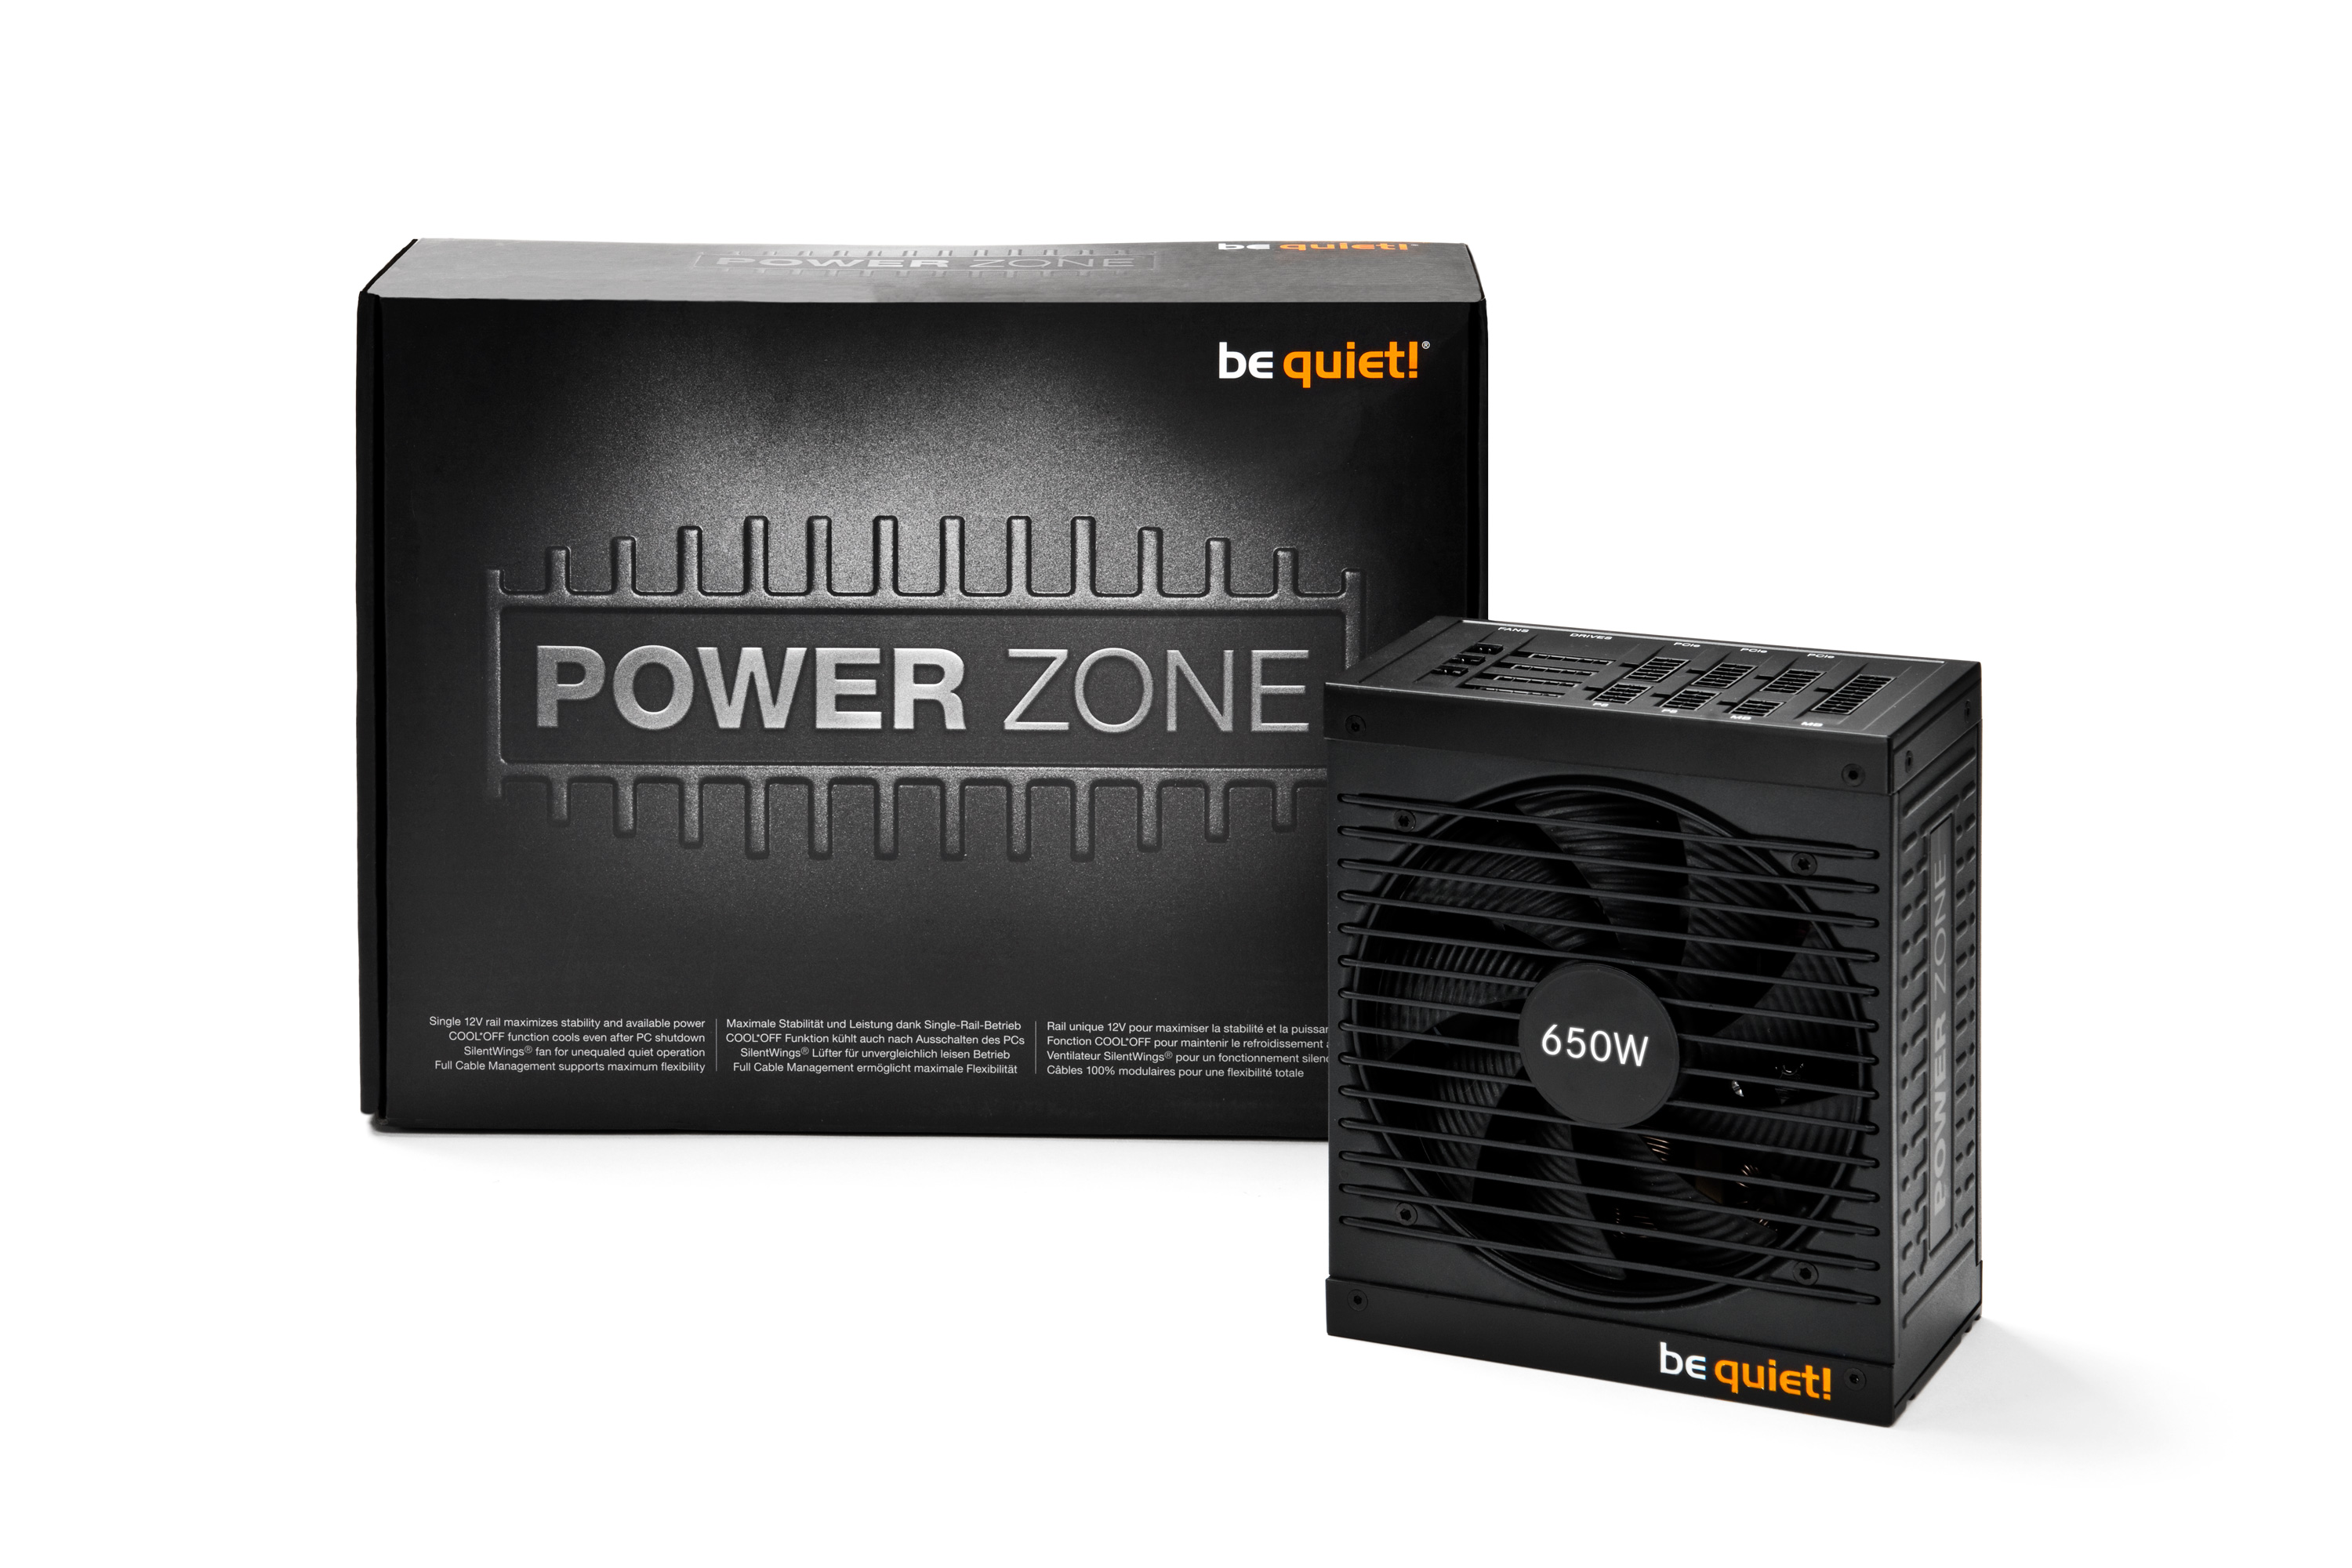 Блок питания be quiet! Power Zone 650W (BN210) 135mm, ATX, 20+4, 4+4, 4*6+2pcie, 8 SATA, 4 Molex, 80 Plus Bronze, кабеля модульные